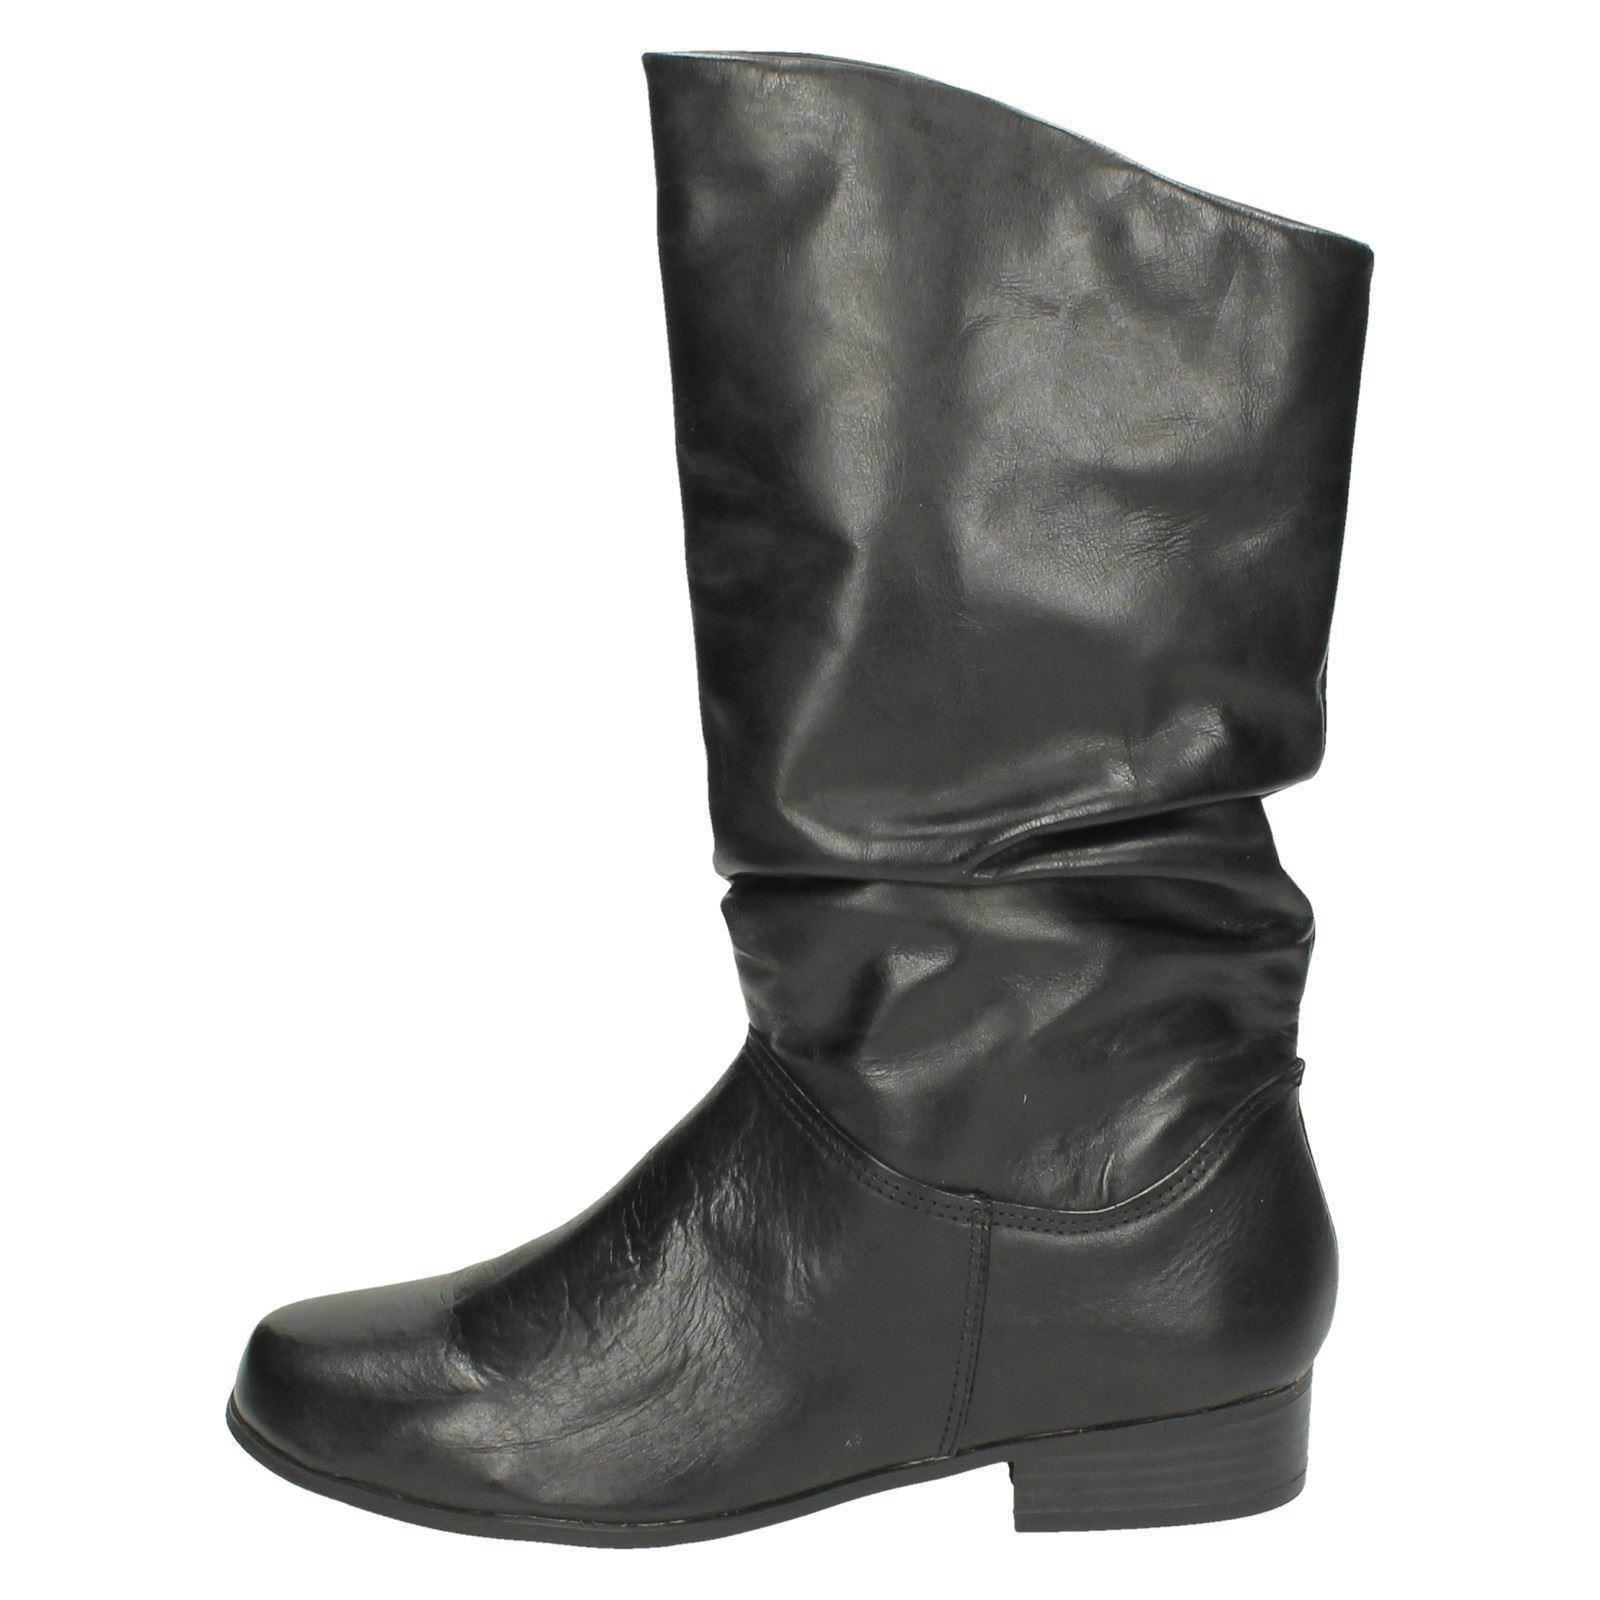 Leather Collection para mujer PULL UP Media Caña Botas Label - f50694